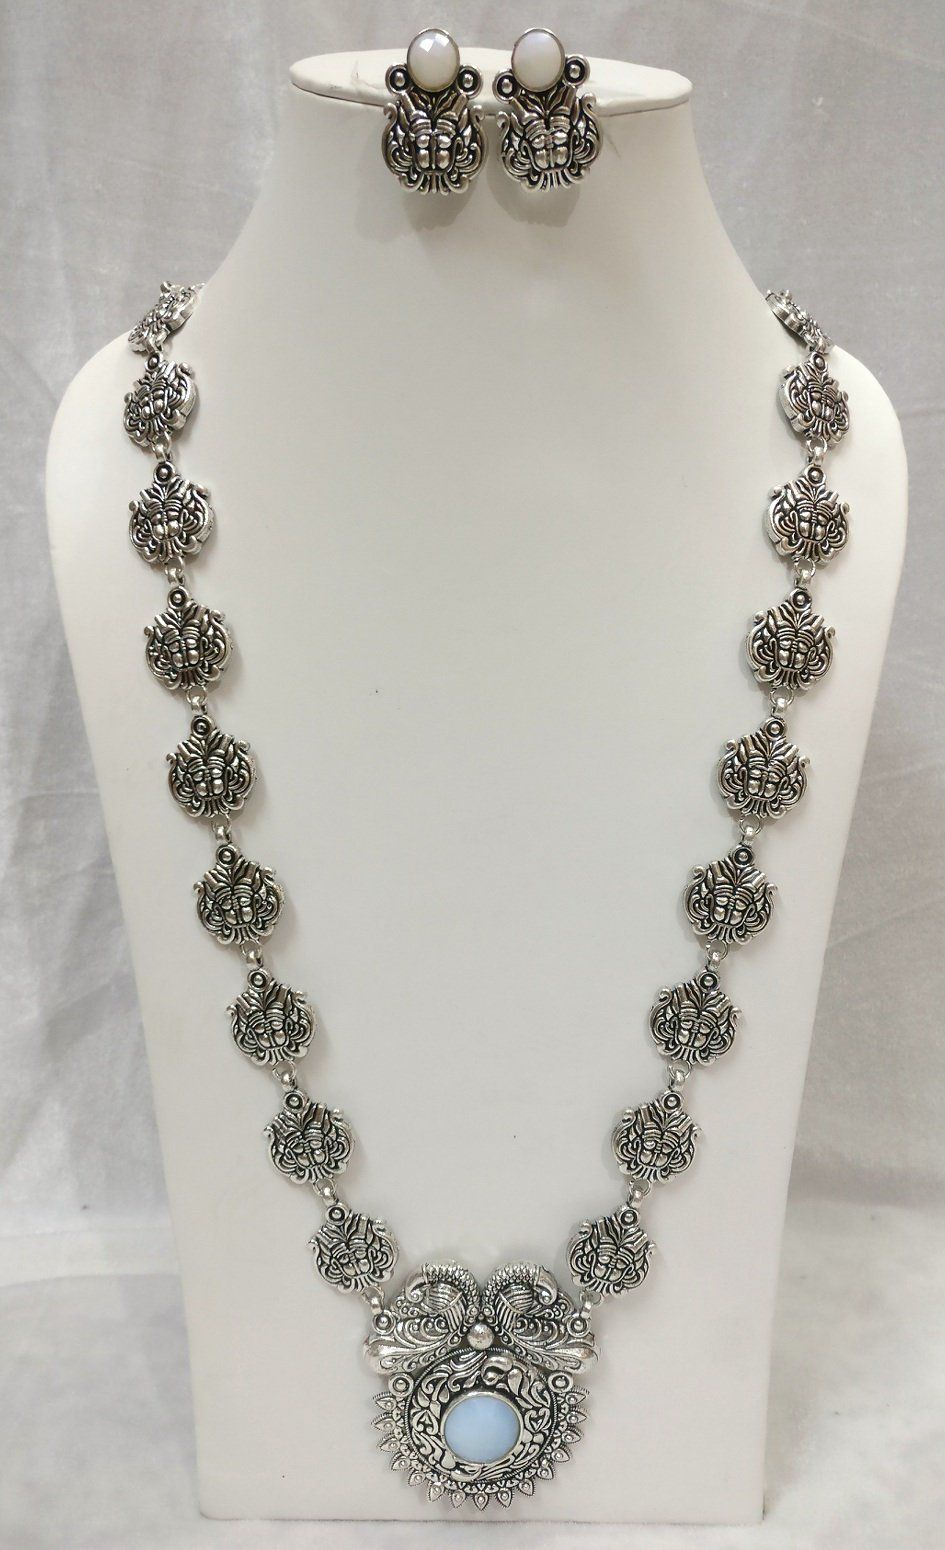 Indian Women Silver Oxidized Peacock Necklace Set Fashion Jewelry Wedding Gift Jewellery & Watches